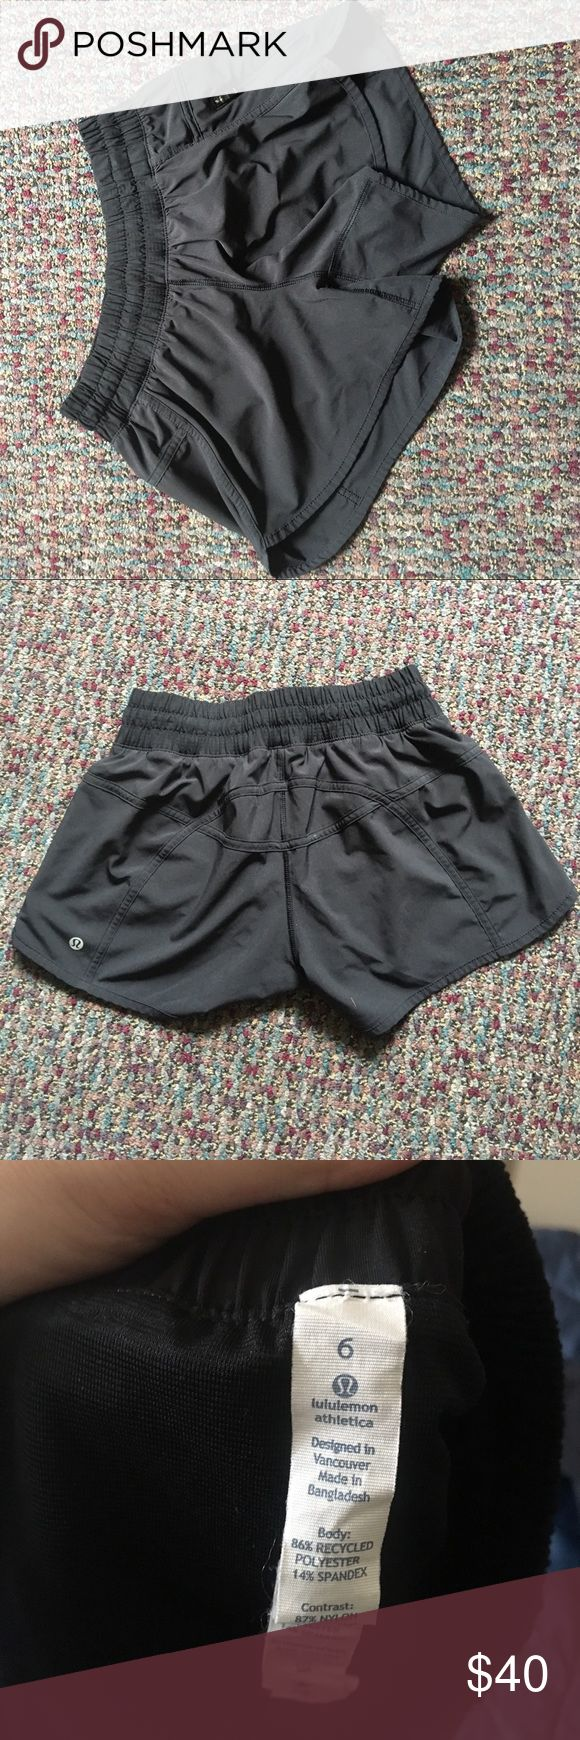 Lululemon Shorts Worn but in very good condition! lululemon athletica Shorts